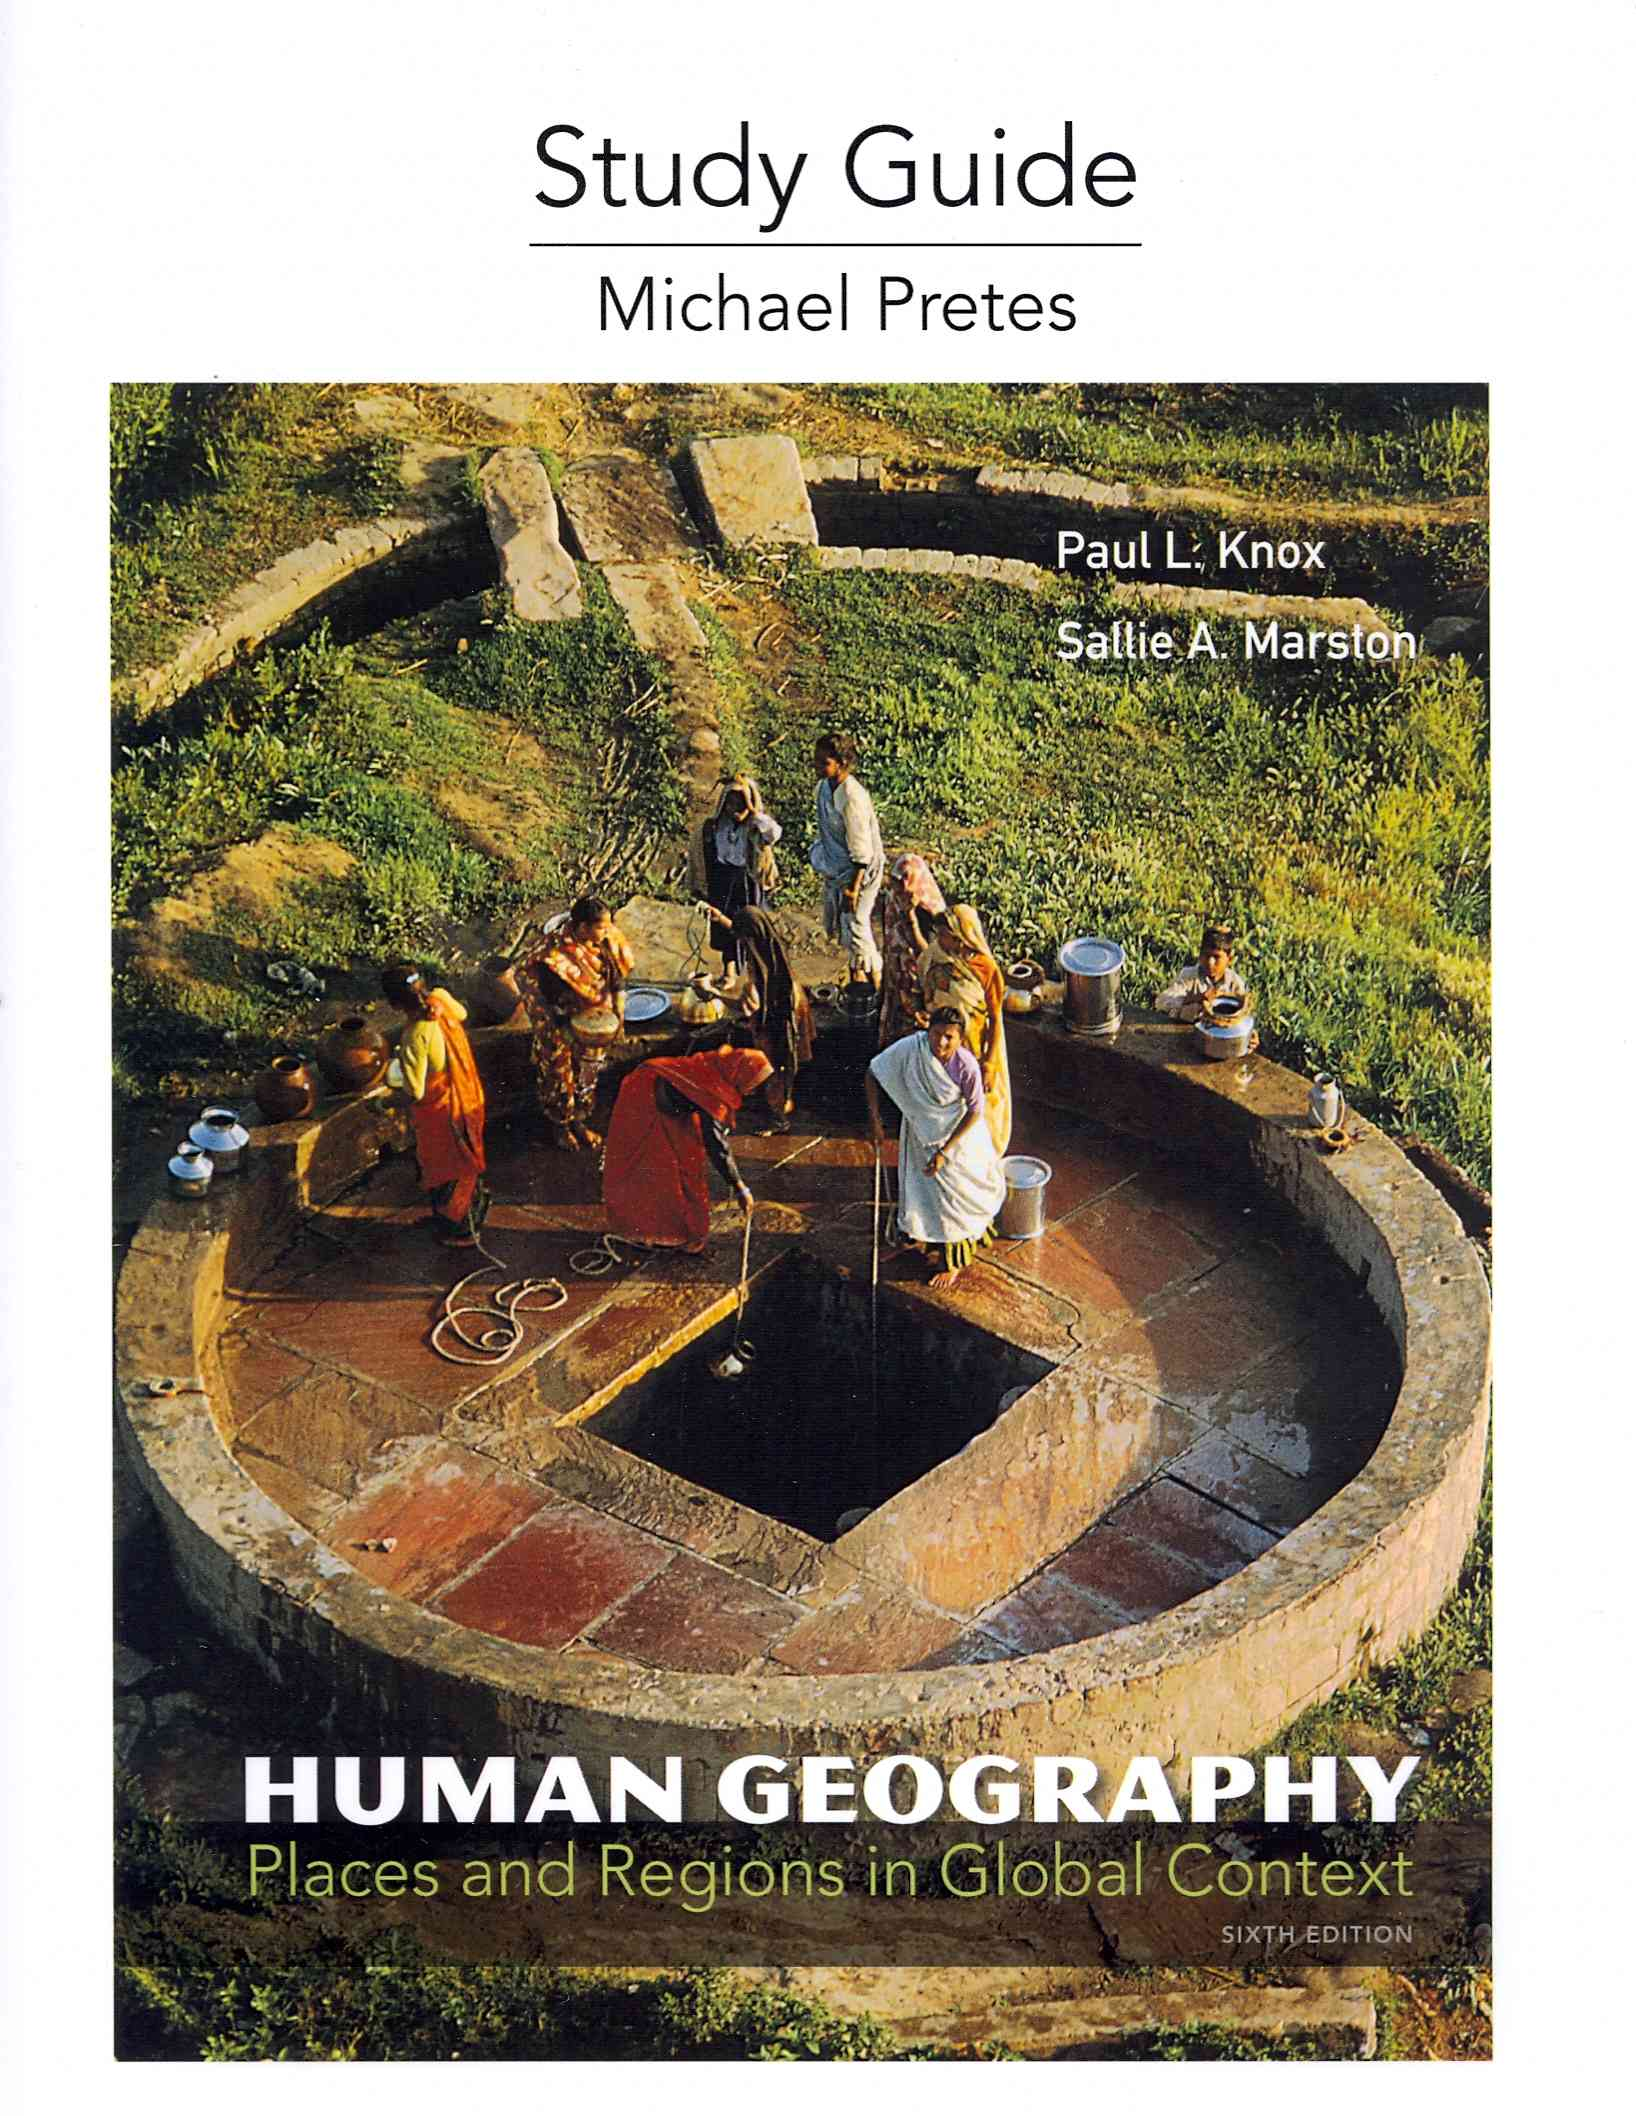 Human Geography: Places and Regions in Global Context (Paperback)